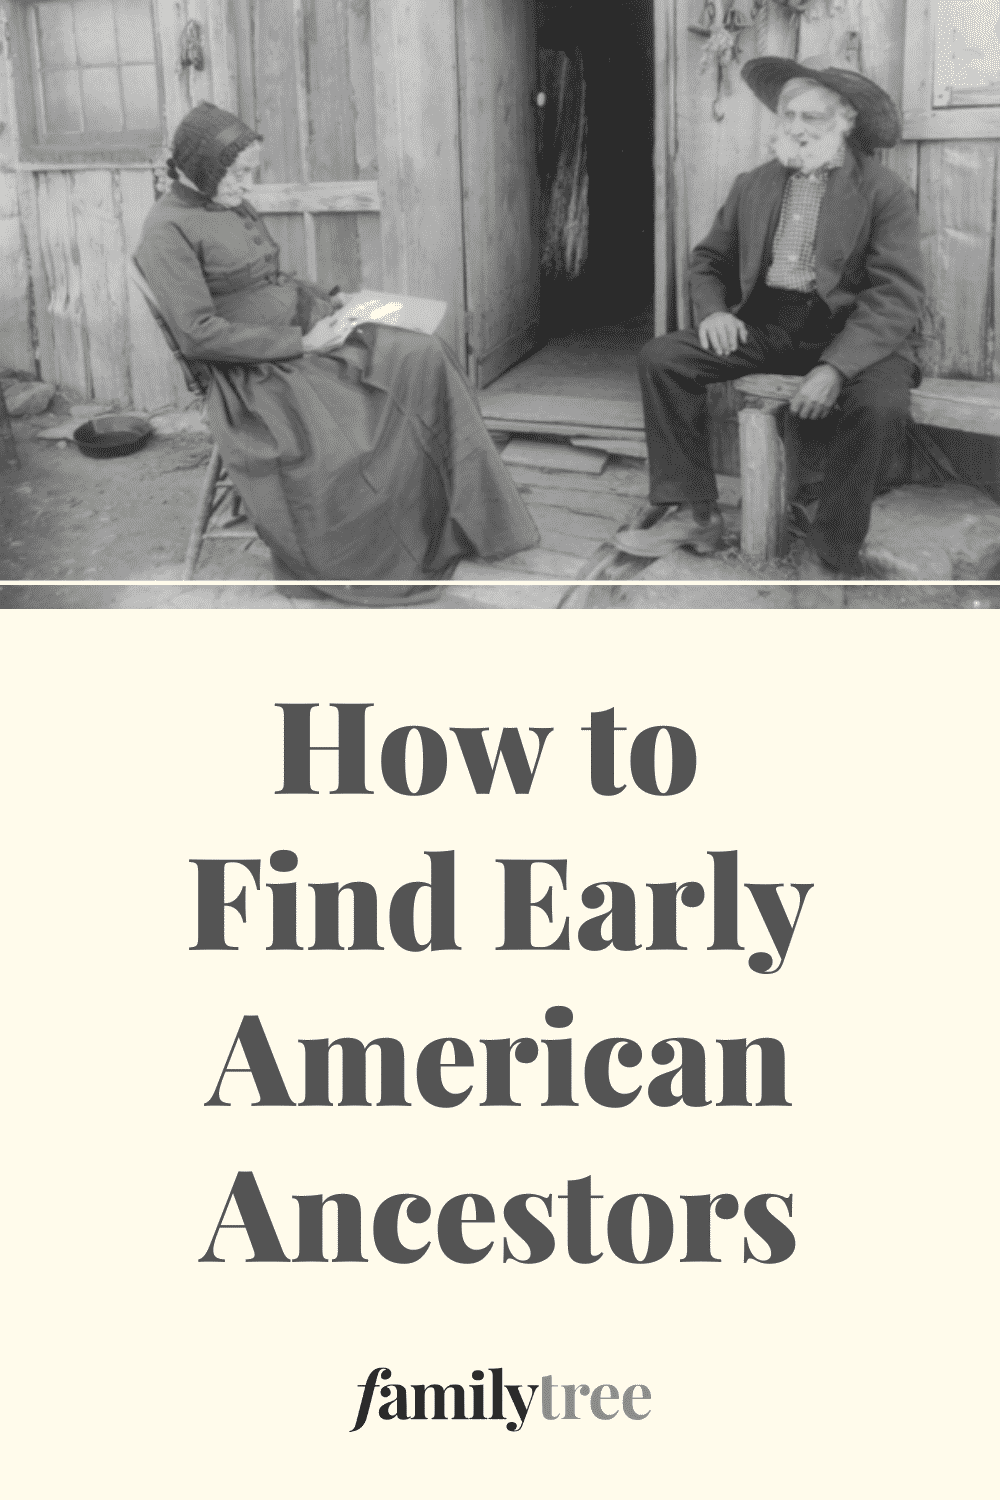 How to Find Early American Ancestors